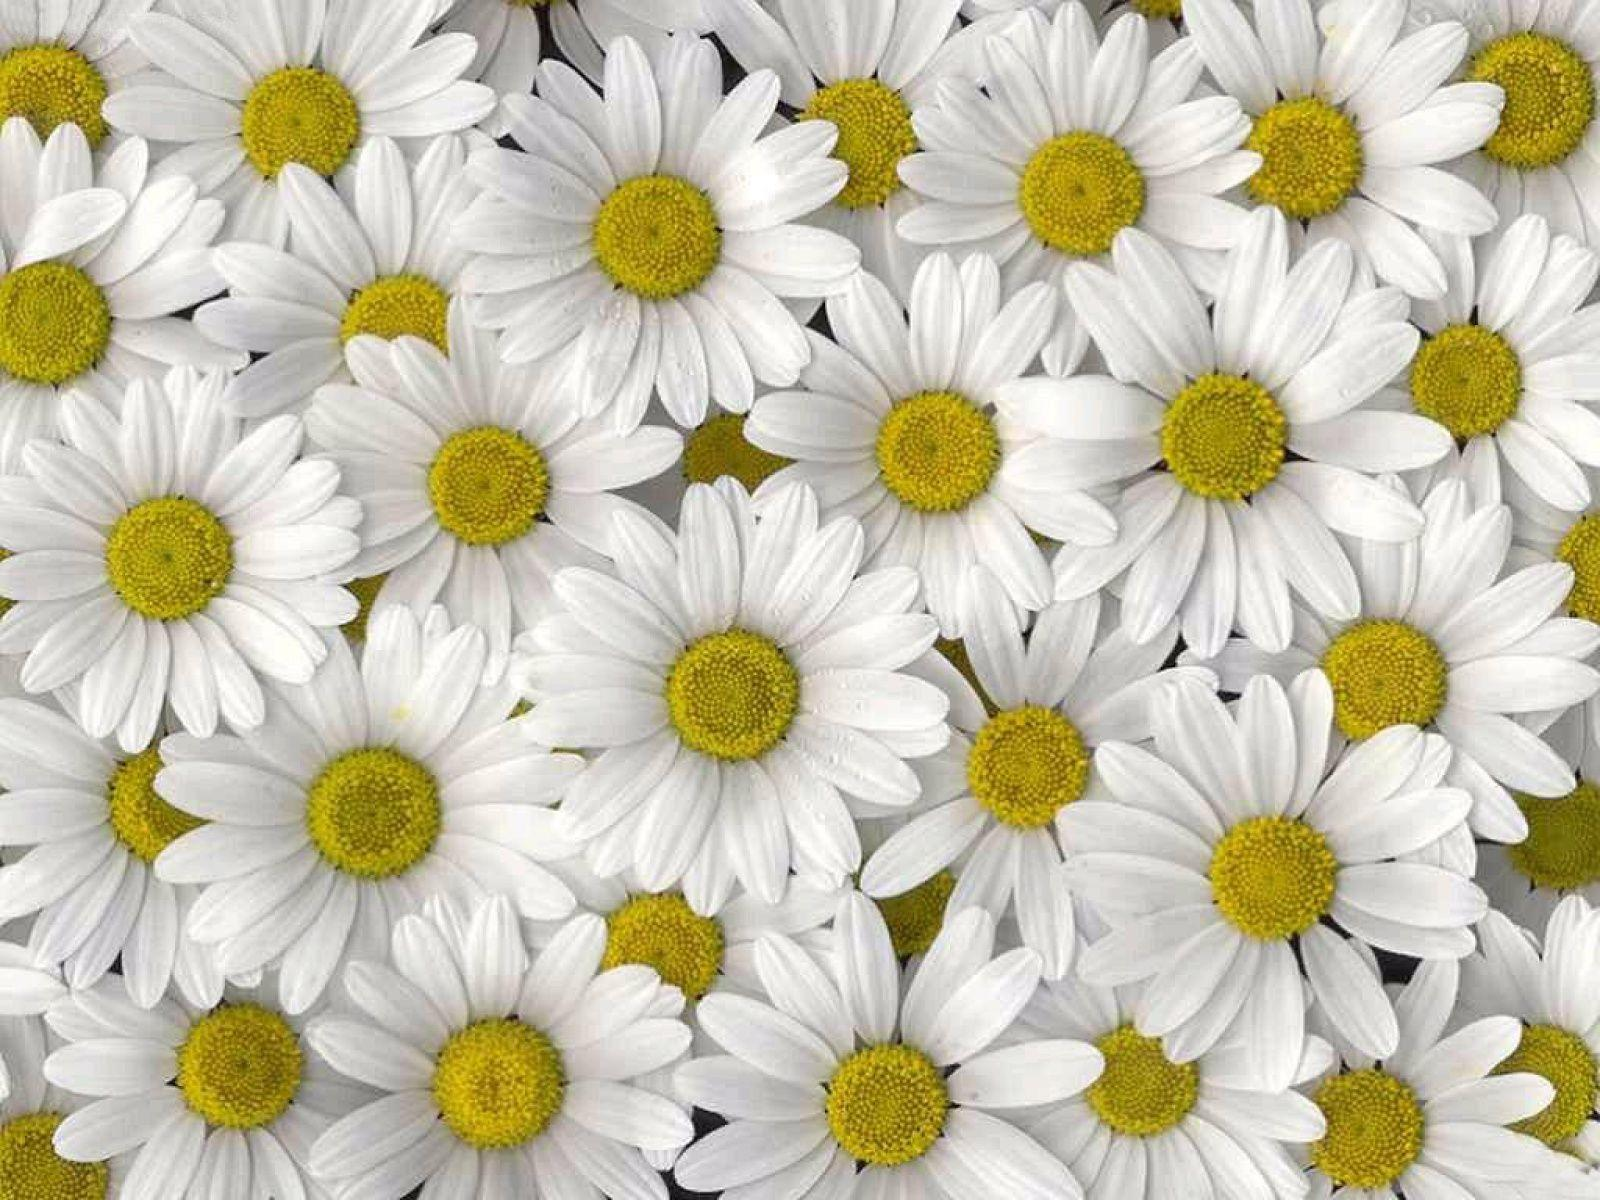 Daisy wallpapers wallpaper cave for Mal bianco rose